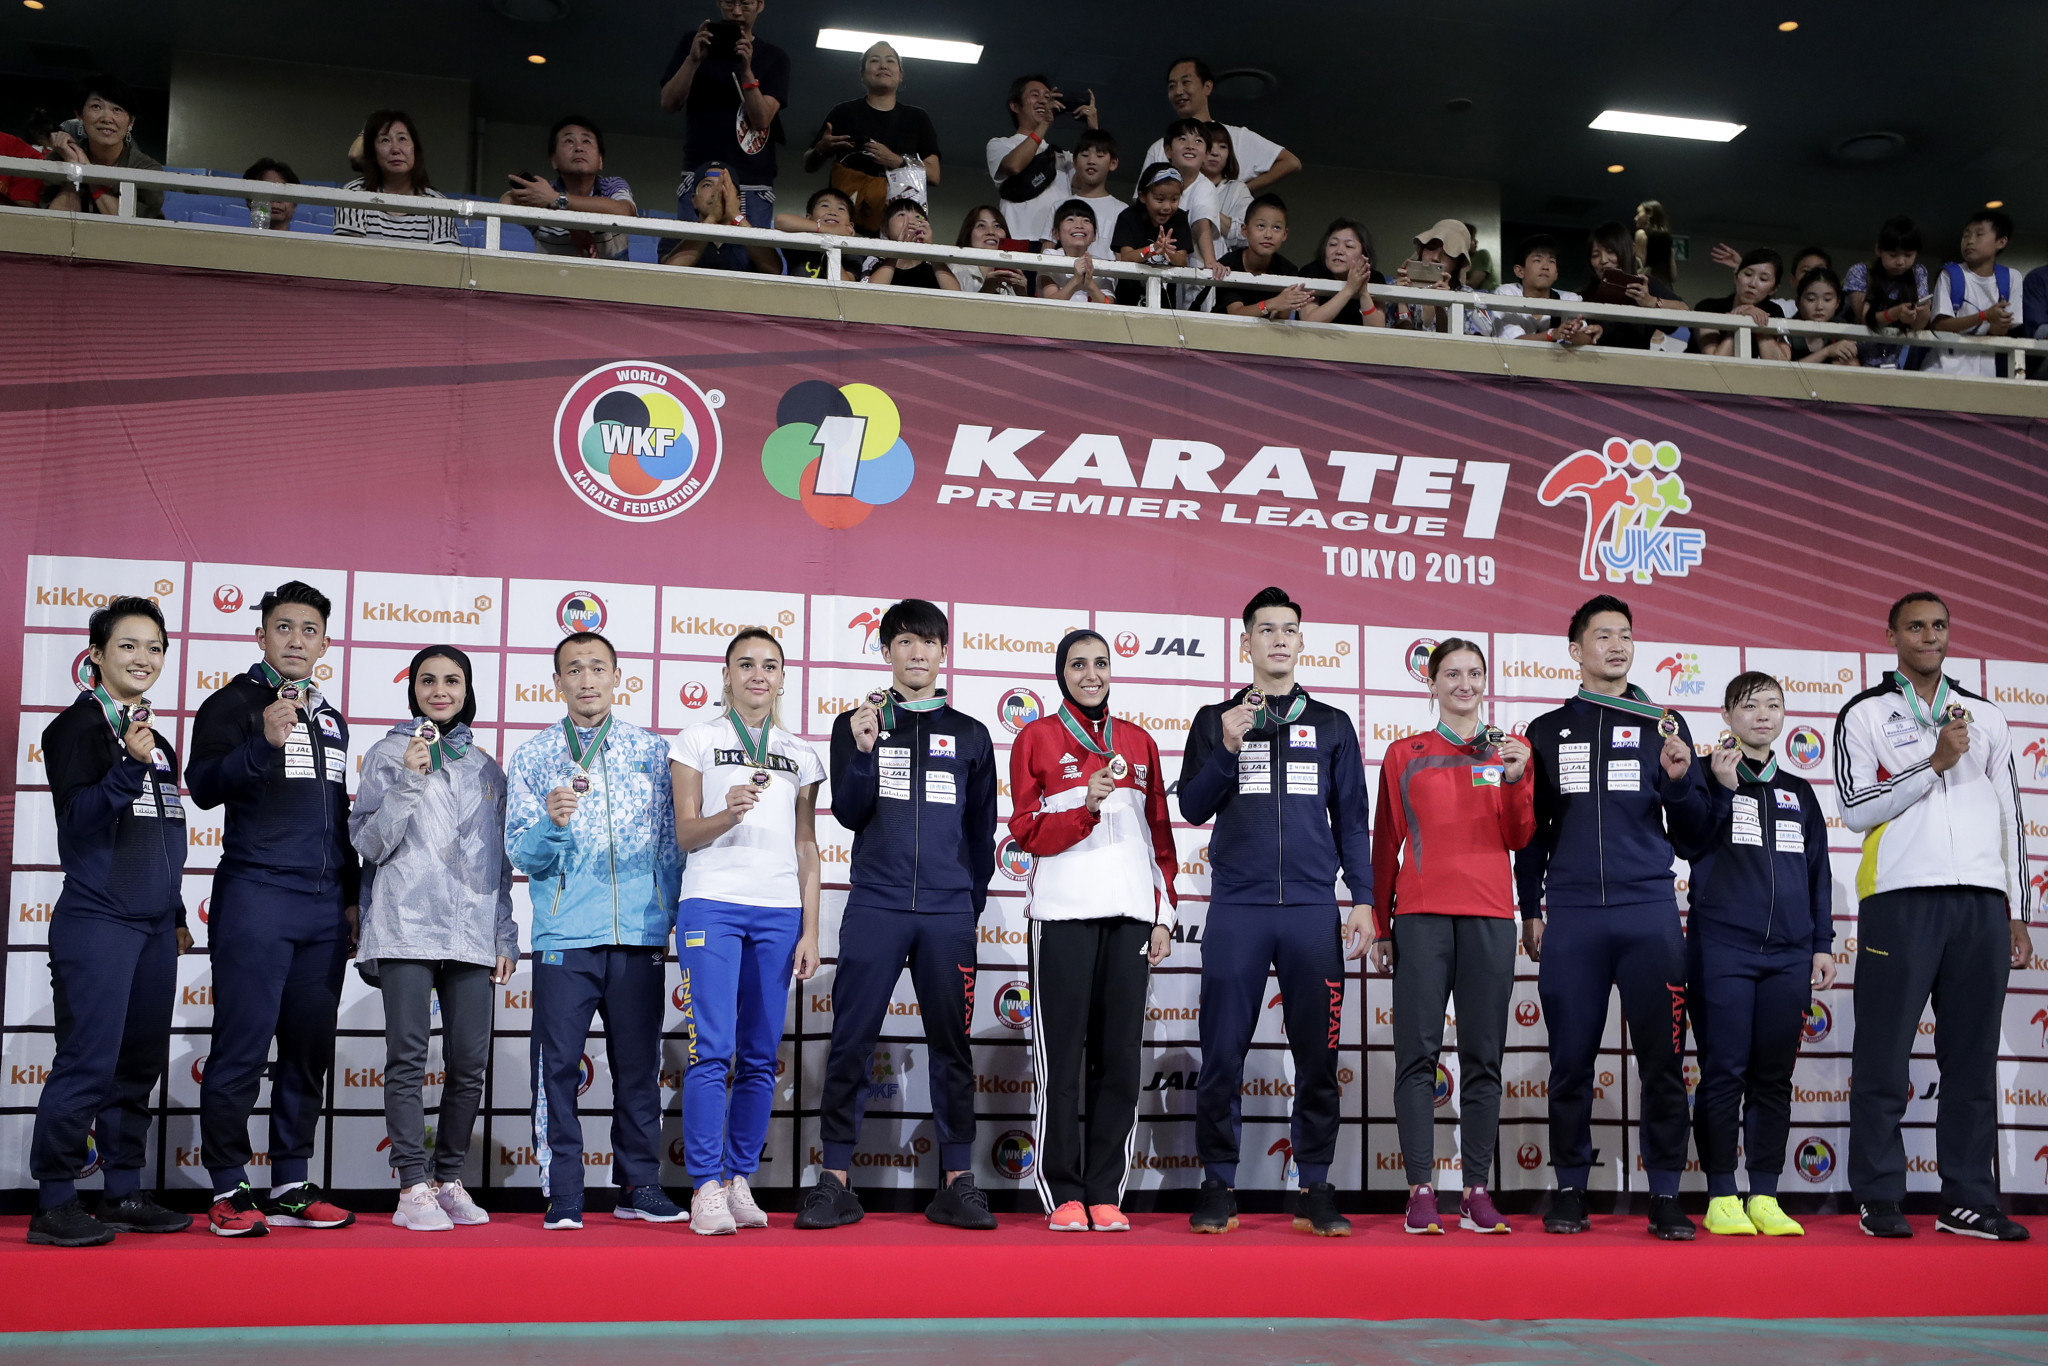 Five stops are scheduled on the Karate 1-Premier League circuit in 2021, while the sport is also due to make its debut at the Tokyo 2020 Olympics in August ©Getty Images